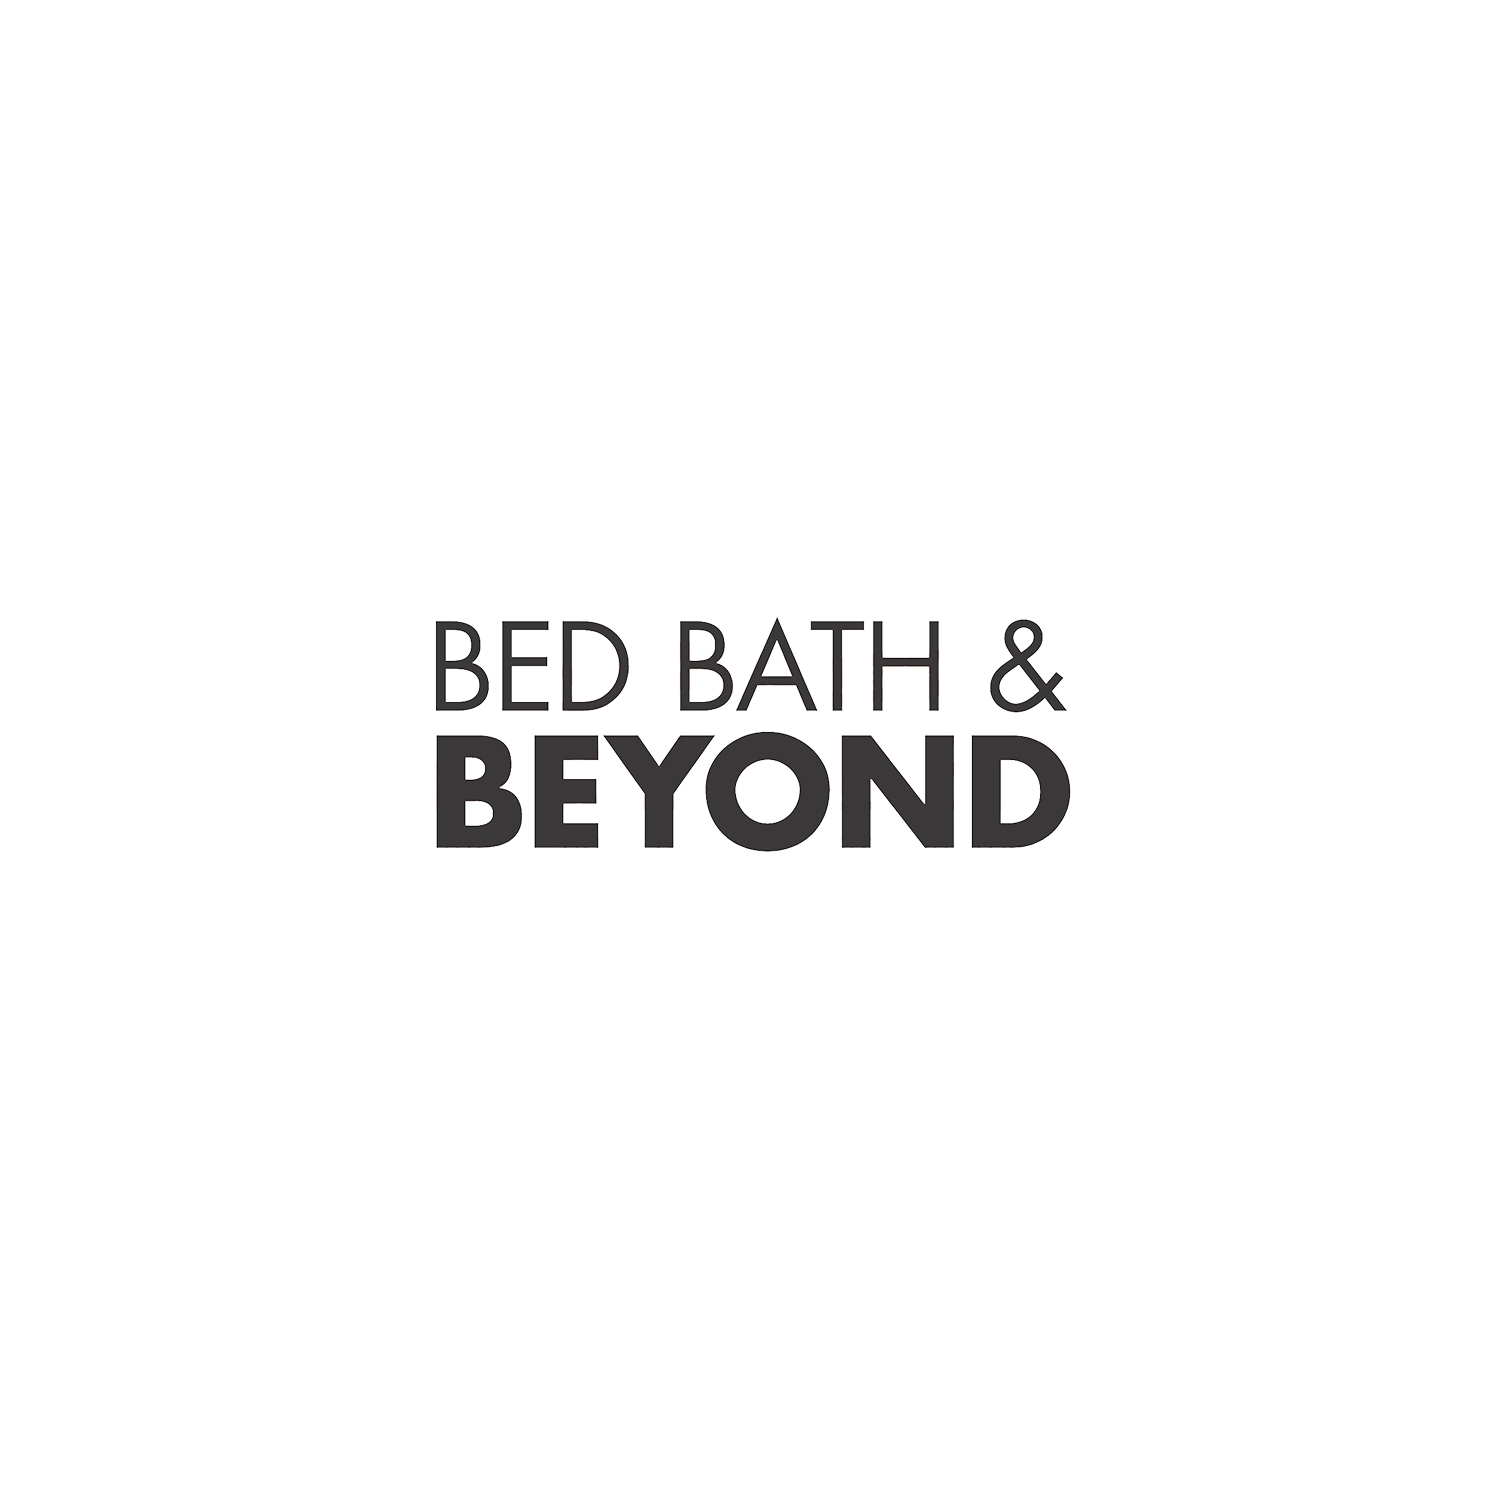 Bed Bath & Beyond - You can't go wrong here. Classic and on trend styles and fabrics in bedding and linens that won't break the bank.